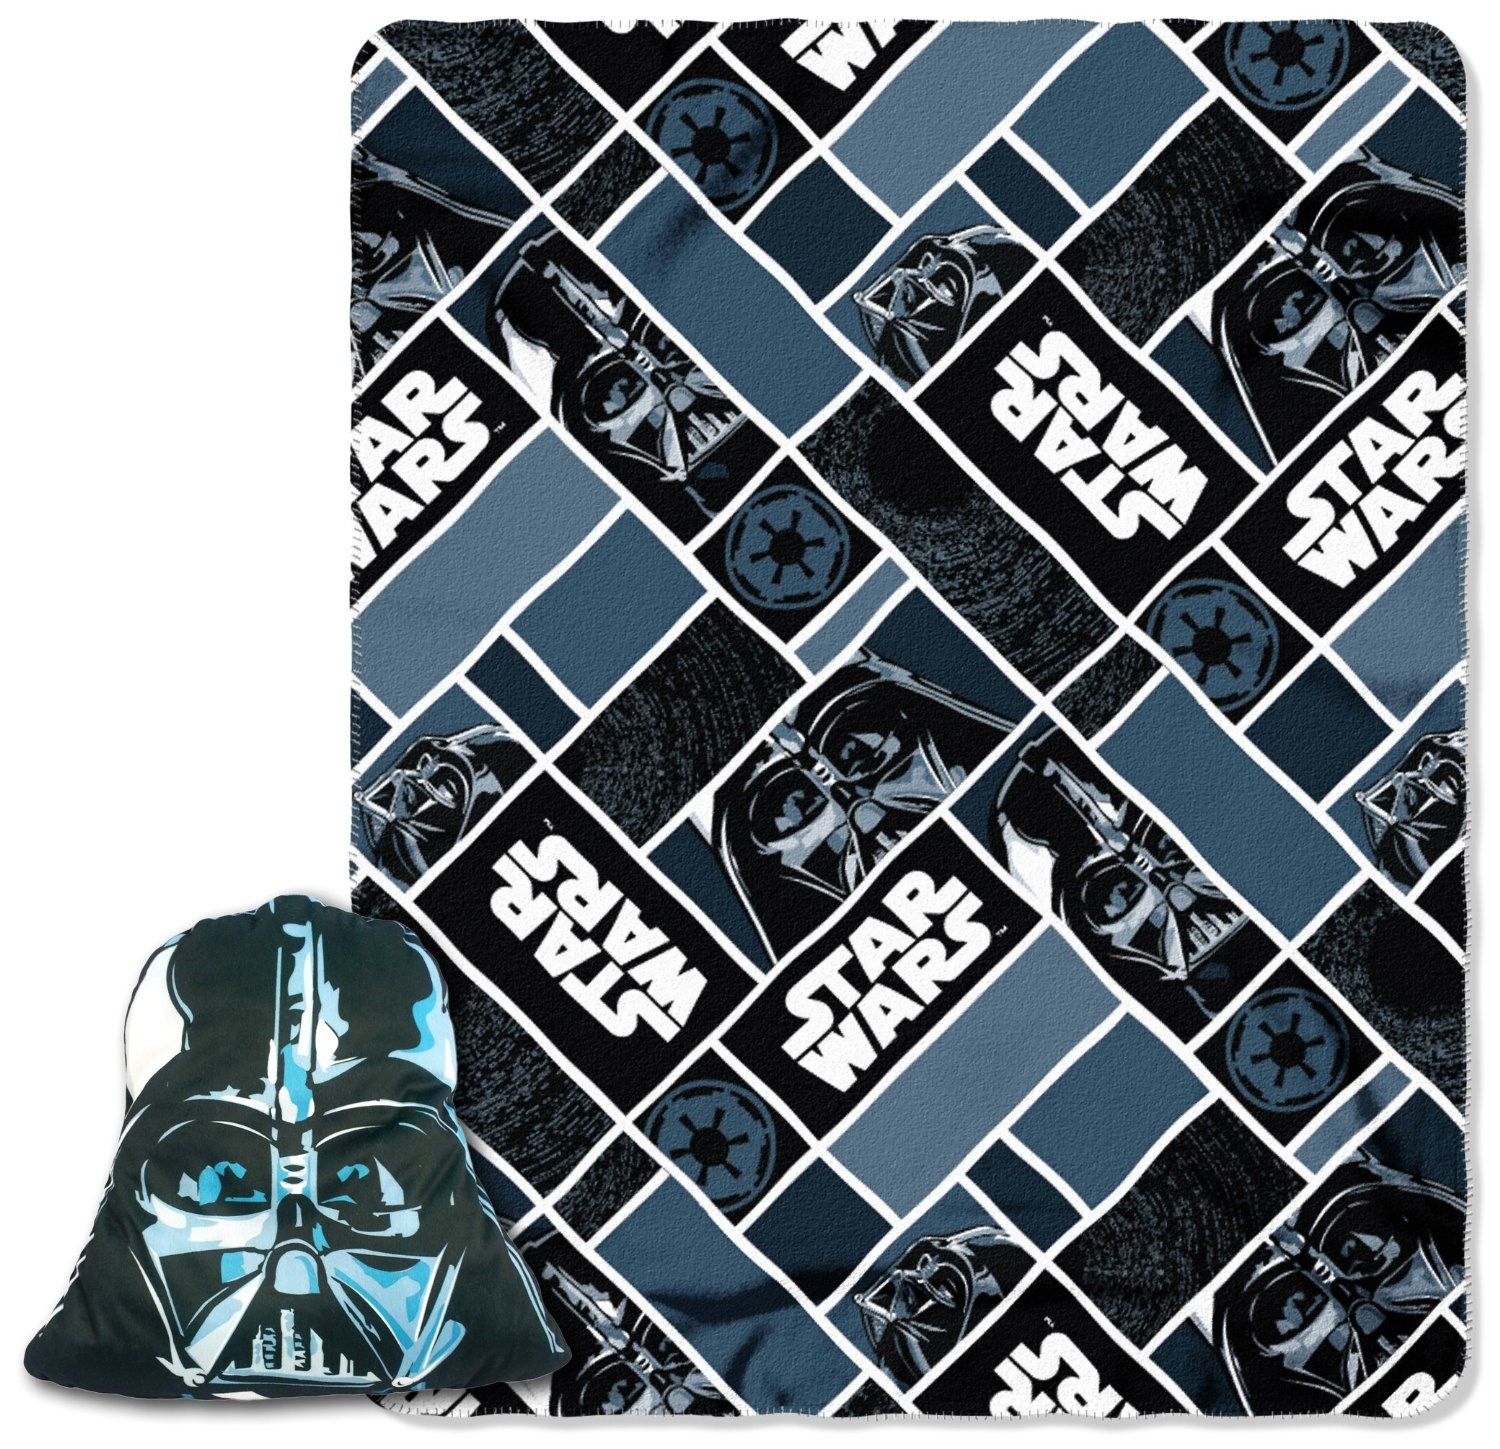 """Lucas Films' Star Wars, Big Mask Darth Vader 16"""" Applique Big Face Character Pillow and 40"""" by 50"""" Fleece Throw in Pocket Set by The Northwest Company"""